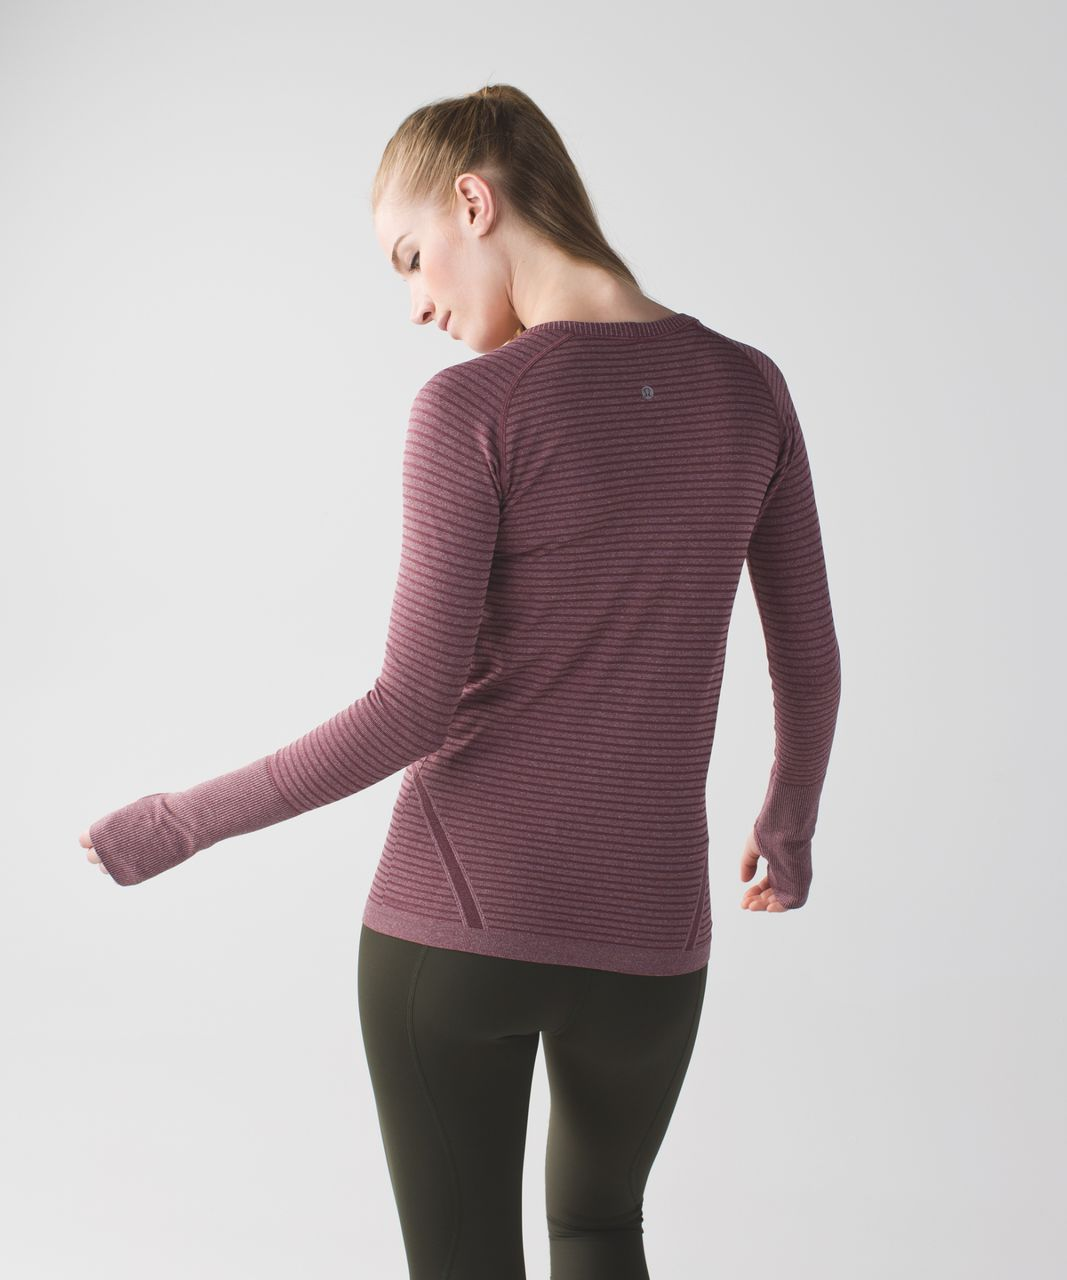 Lululemon Swiftly Tech Long Sleeve Crew - Heathered Bordeaux Drama